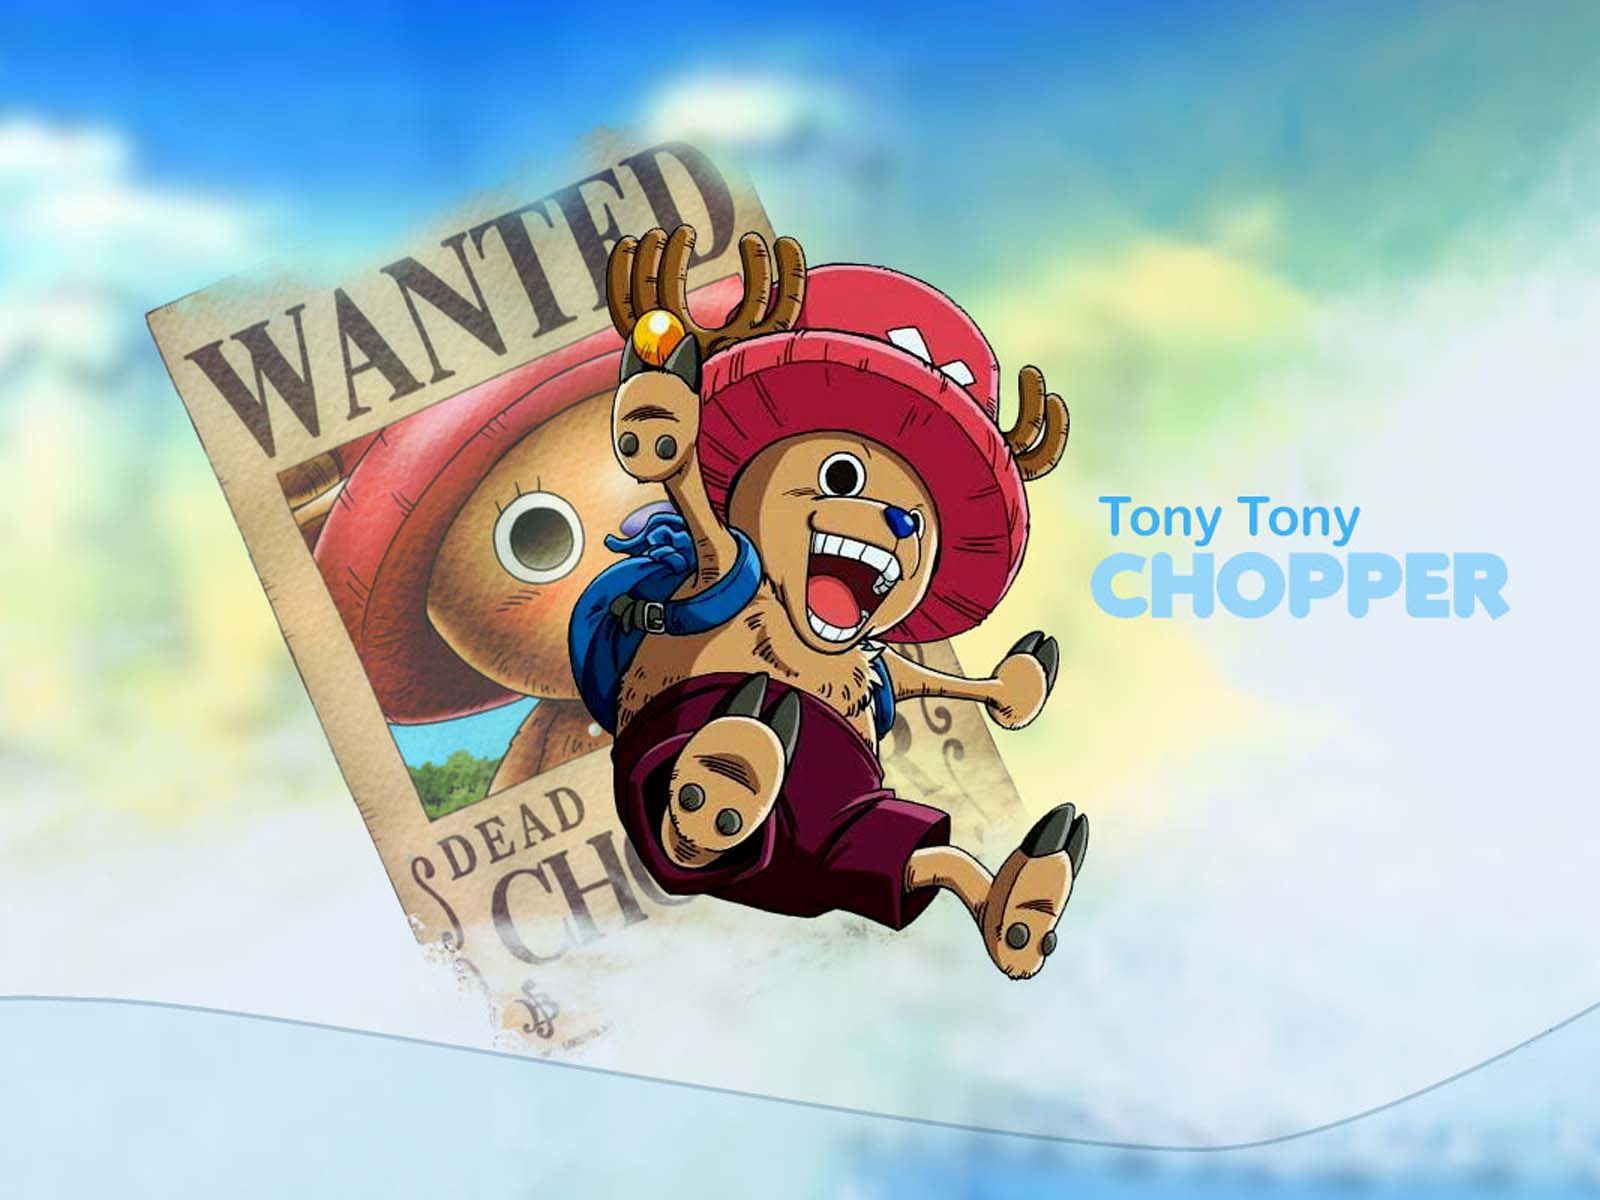 Chopper One Piece Wallpapers - Wallpaper Cave